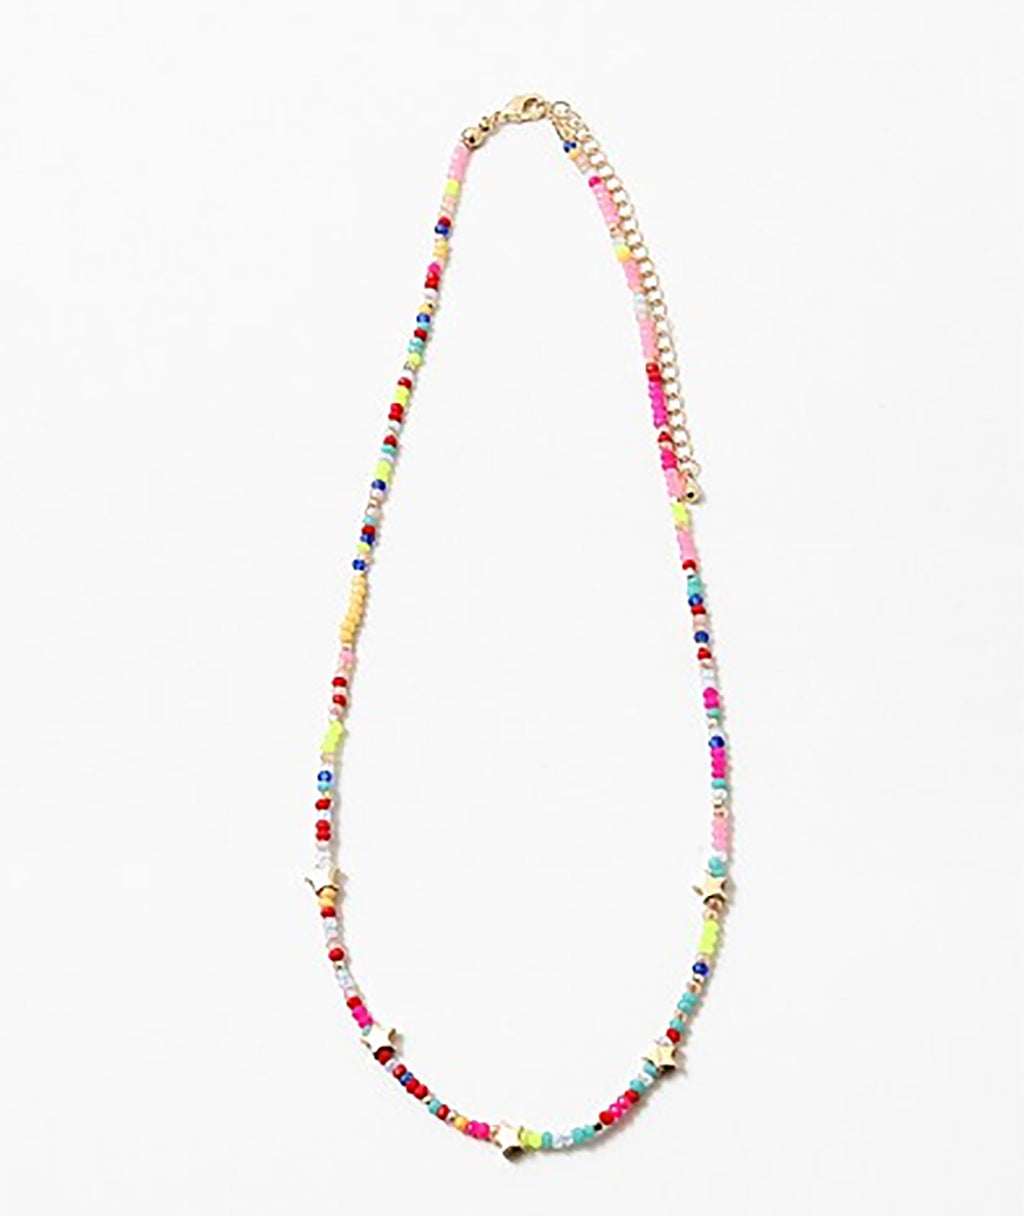 Fashionista J Neon Rainbow Stars Necklace